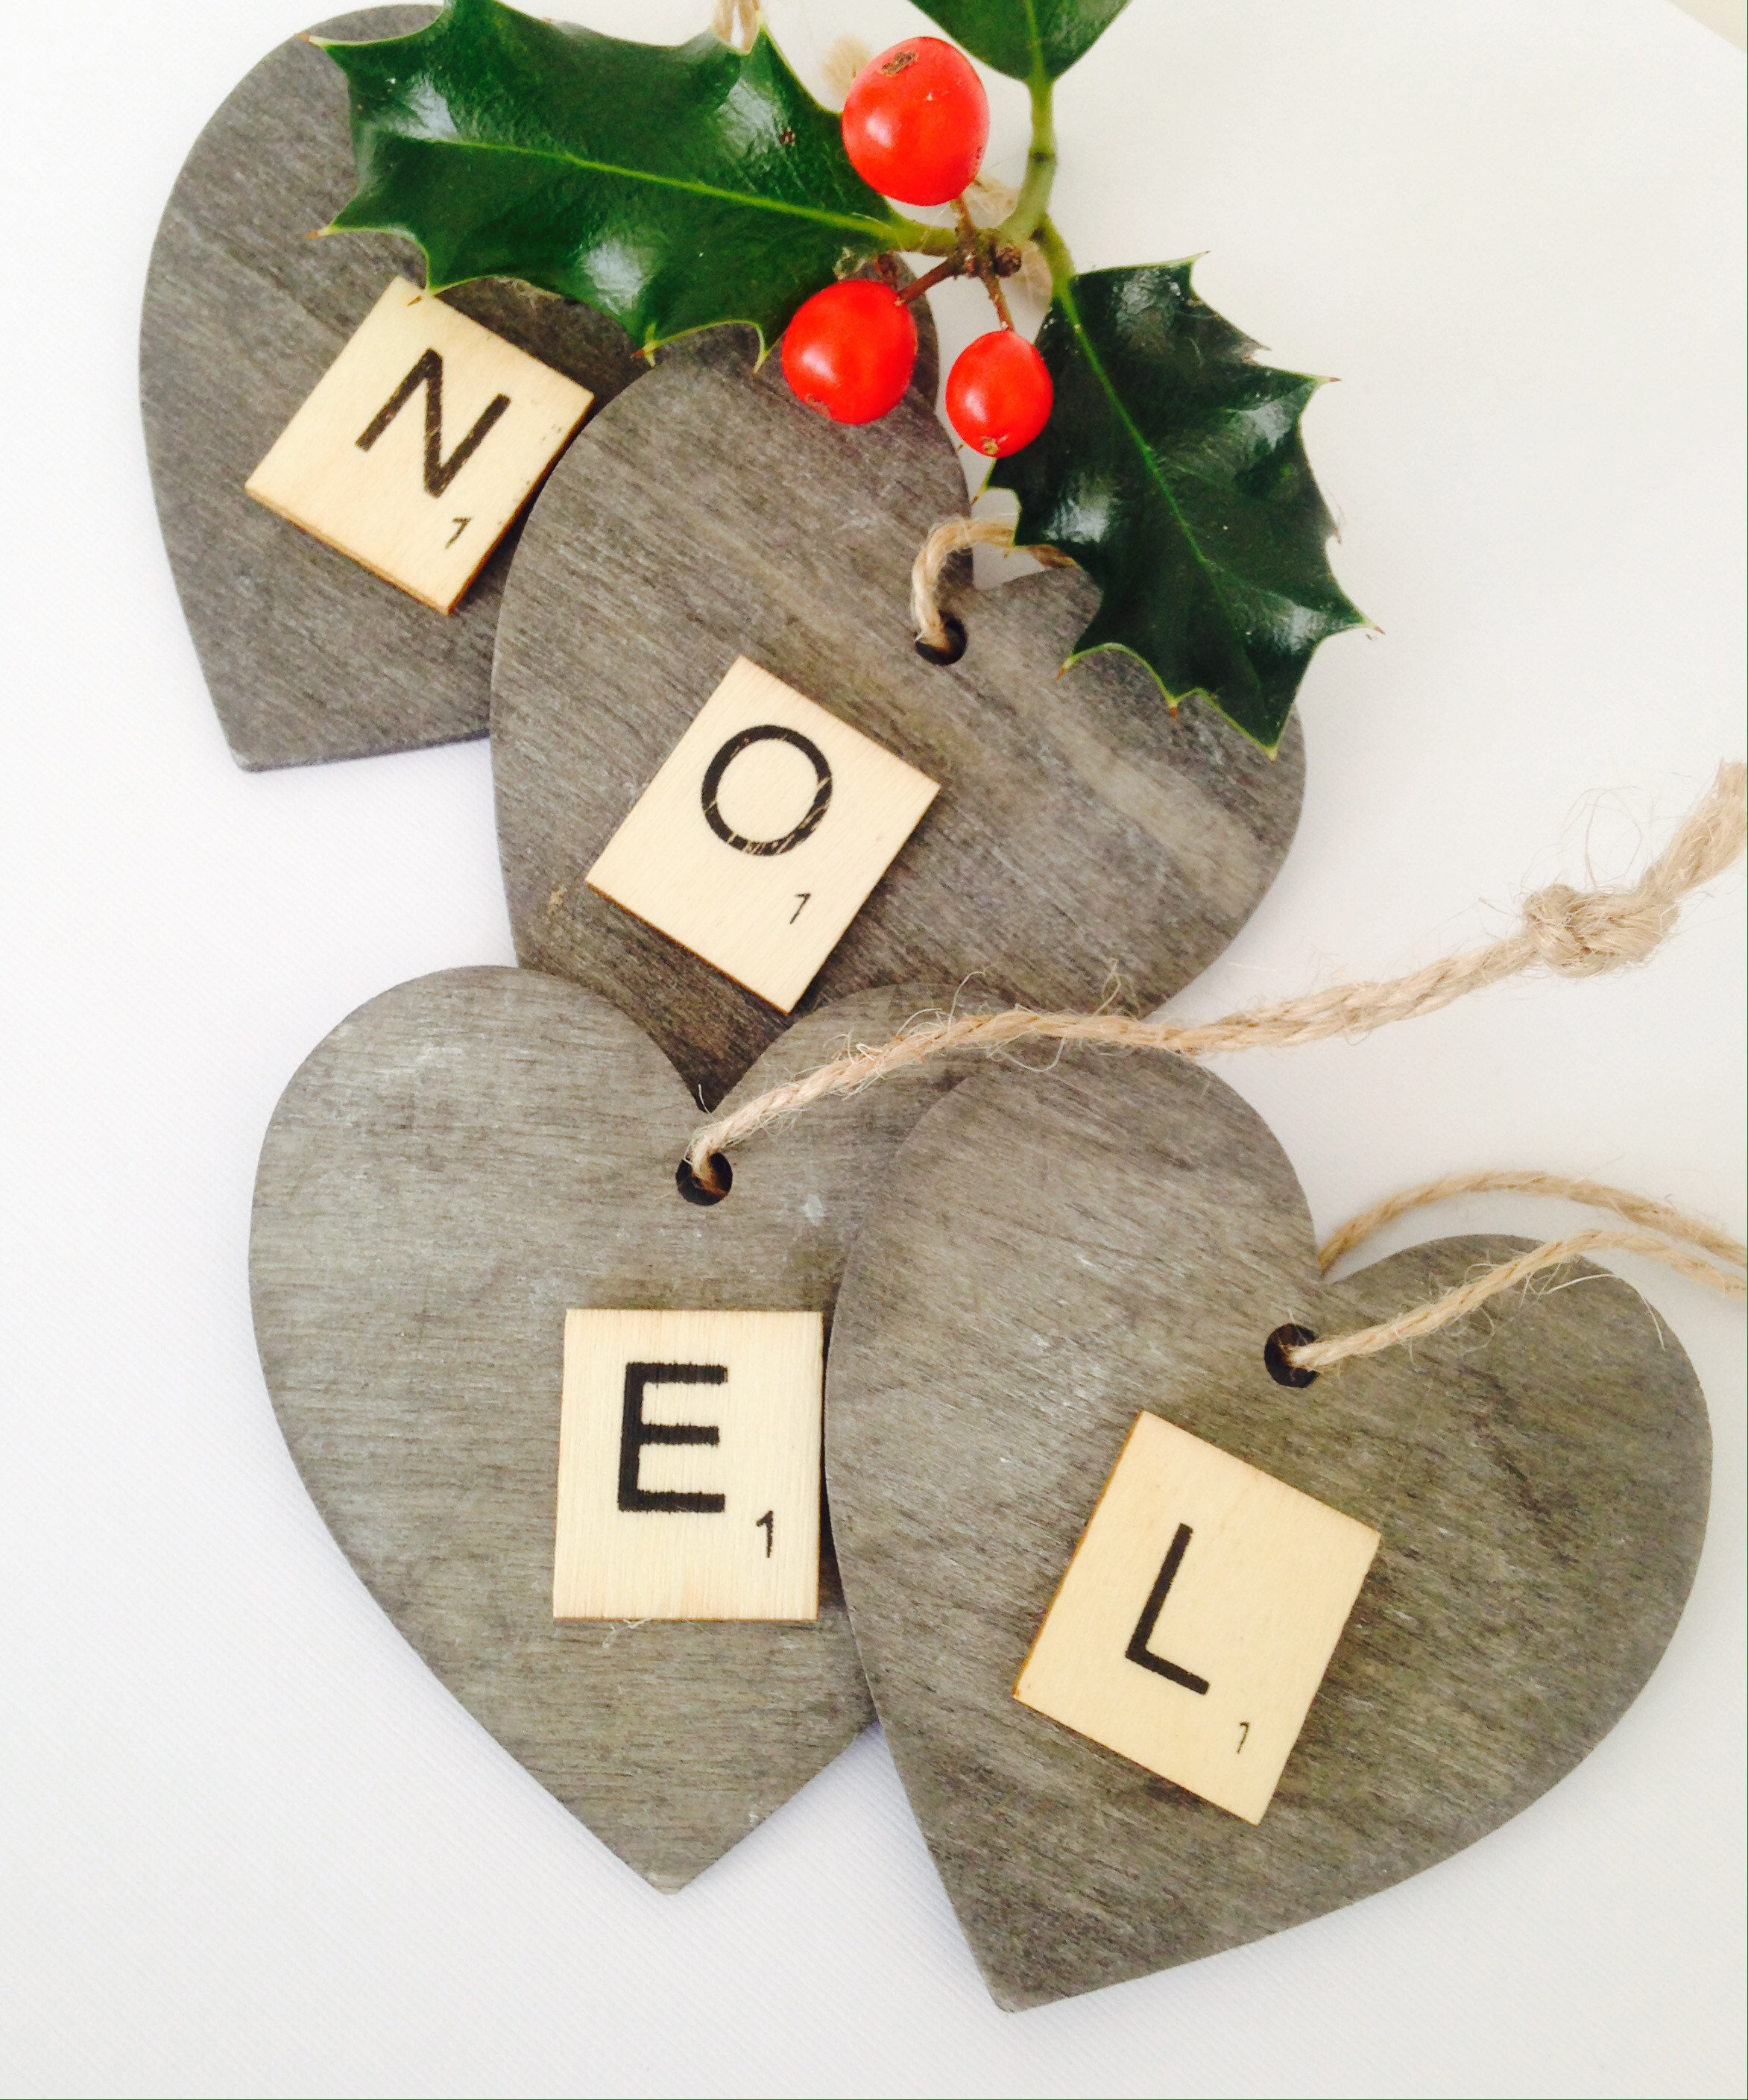 Set Of 4 Wooden Nordic Christmas Ornaments Hand Painted Slate Grey Hearts Embellished With Noel Scrabble Letters Vinteriorco